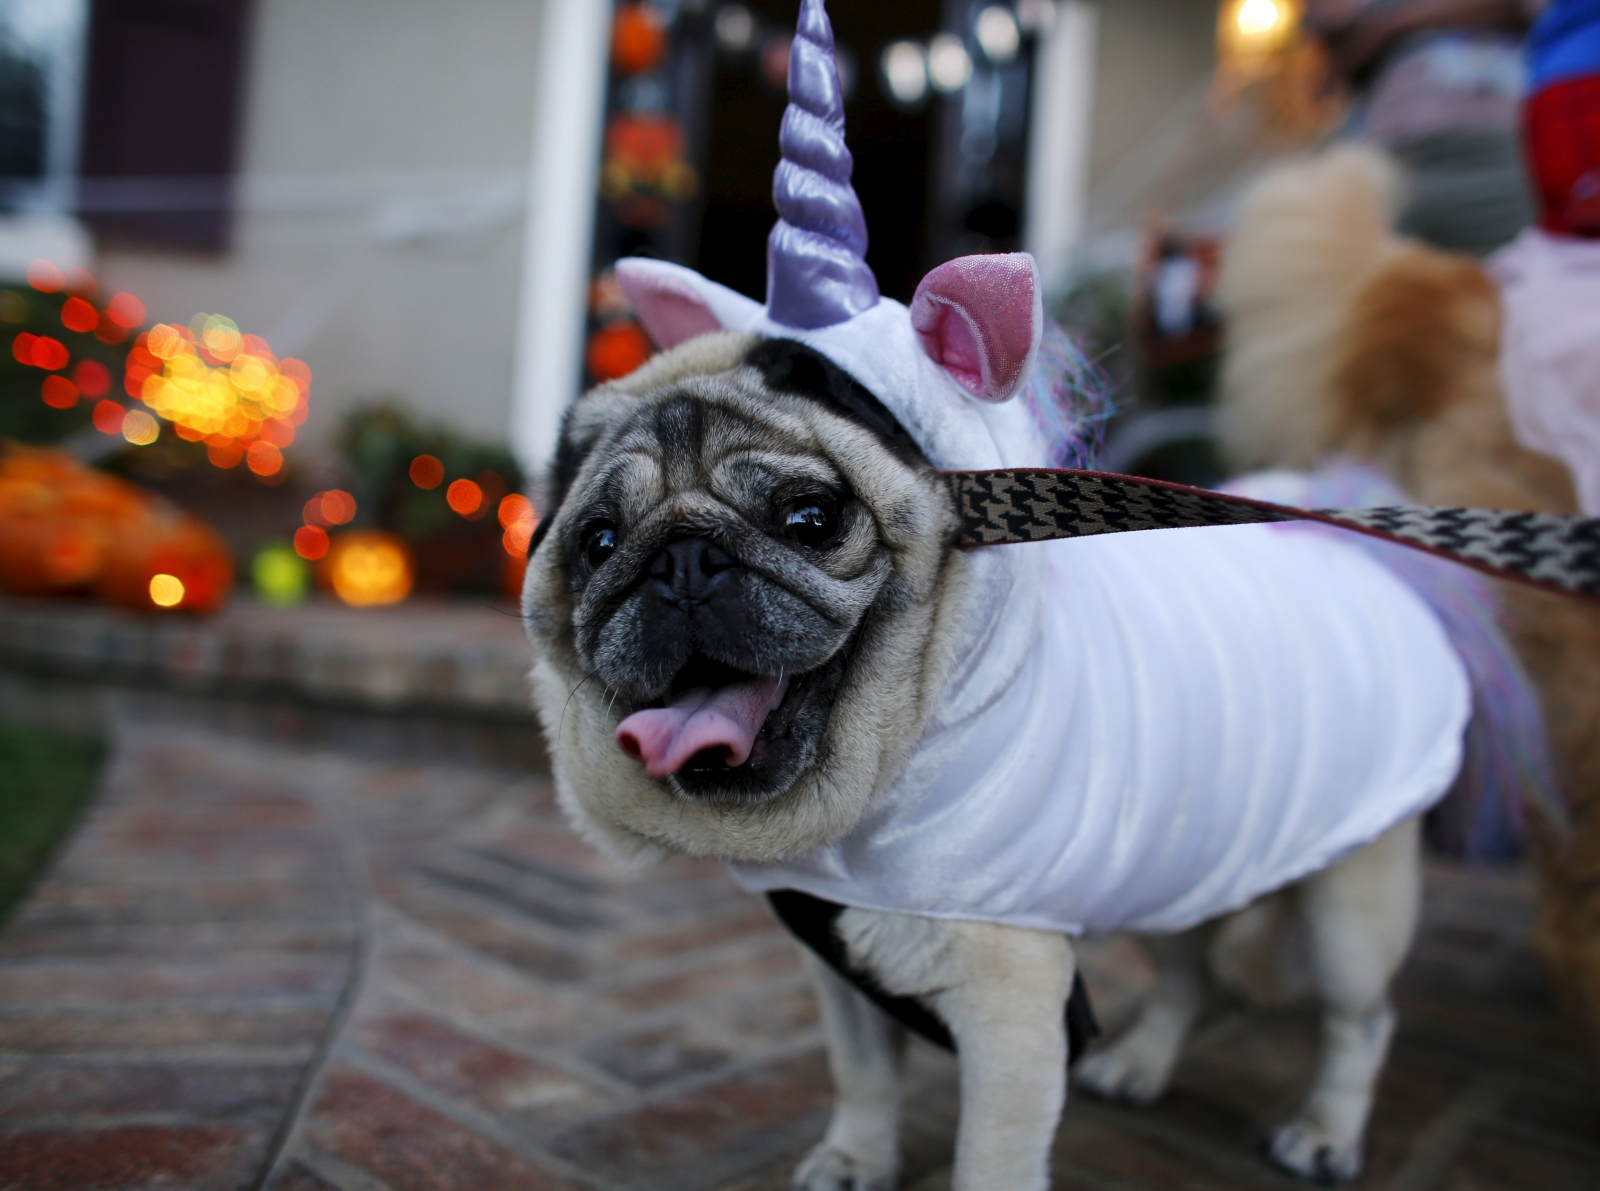 A pug dog is dressed up in costume as she trick or treats with her owners during Halloween in Encinitas, California October 31, 2015